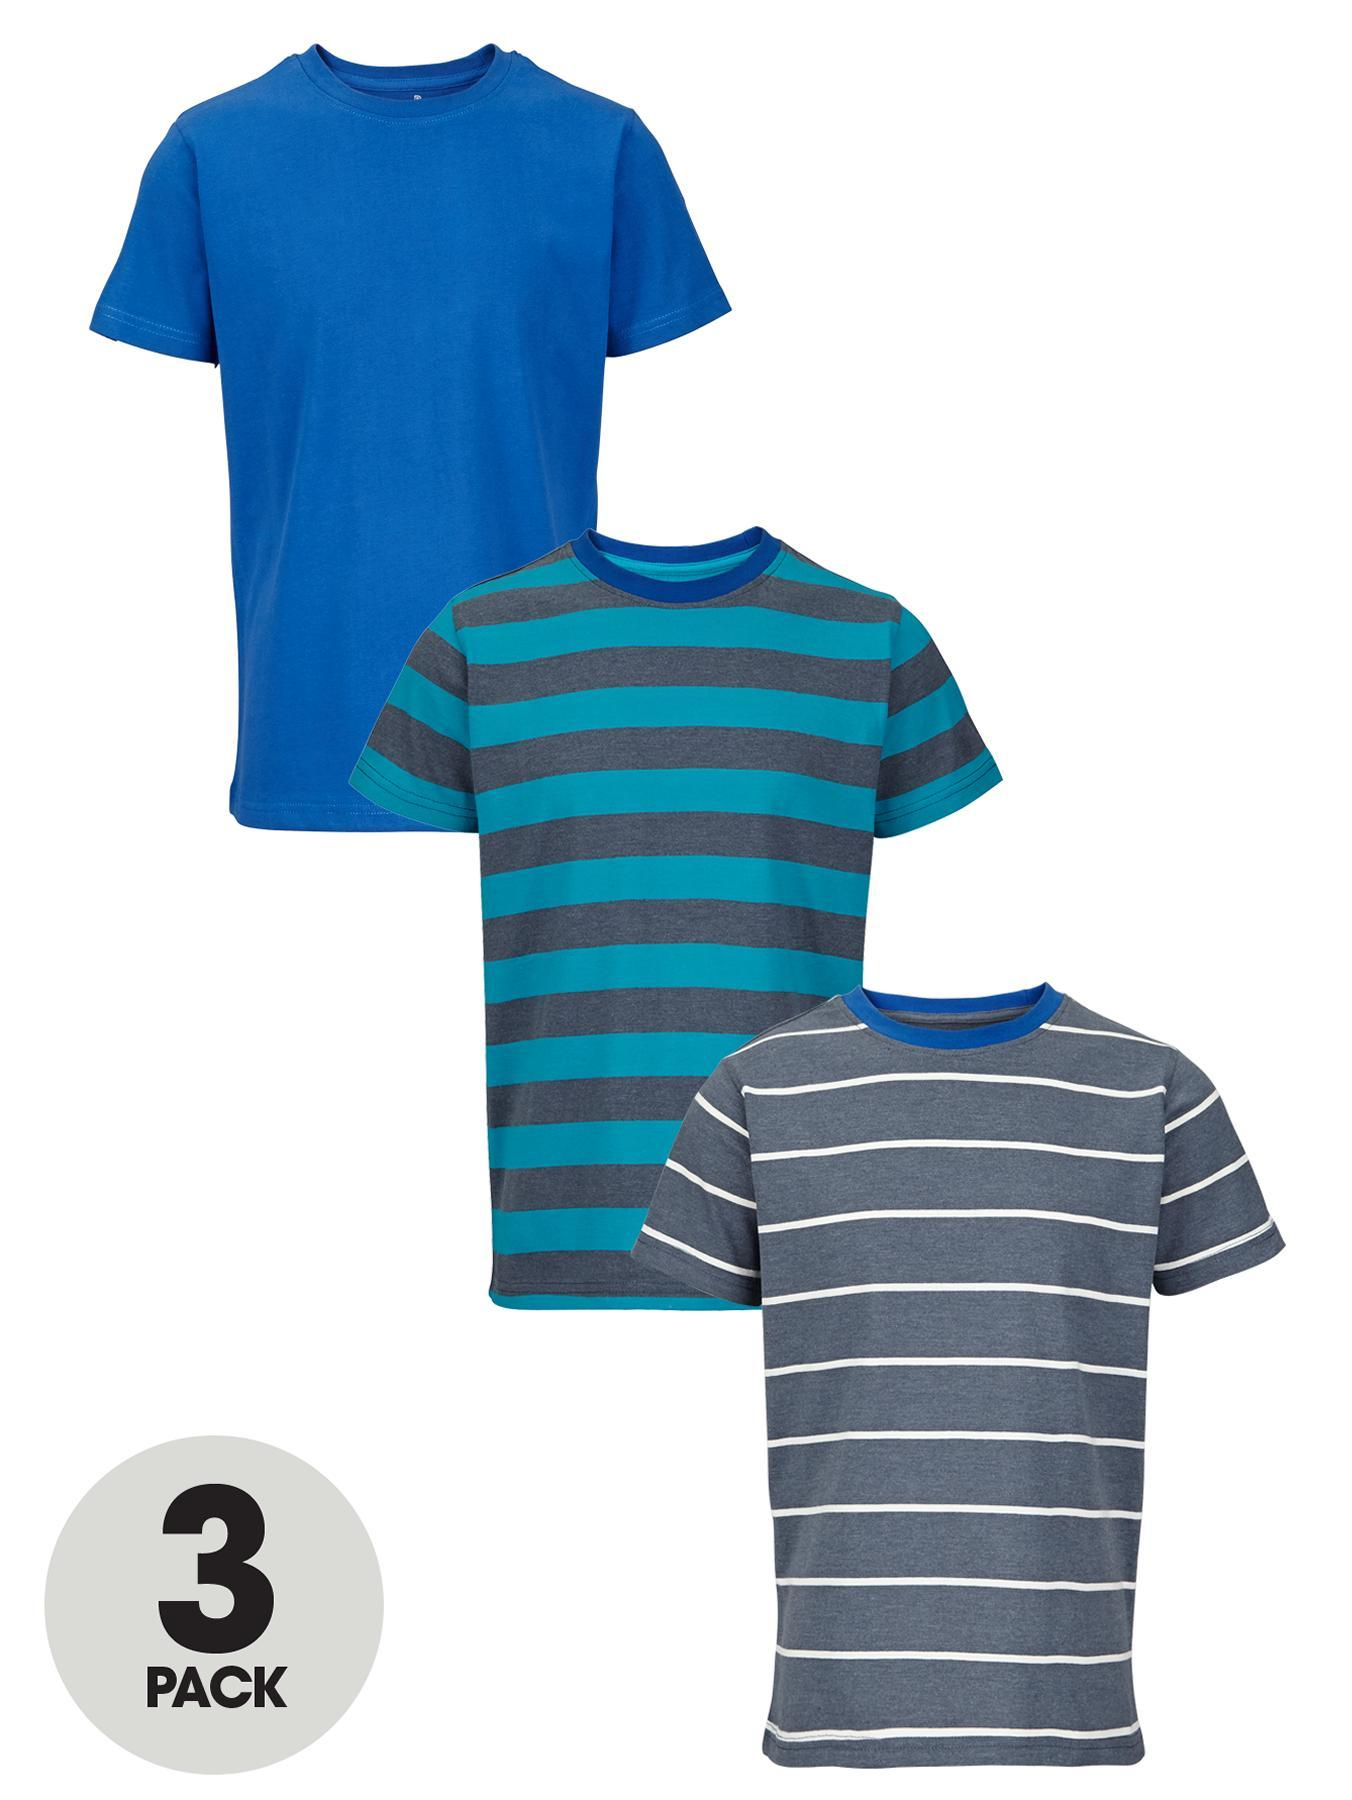 Stripe Tees (3 Pack)